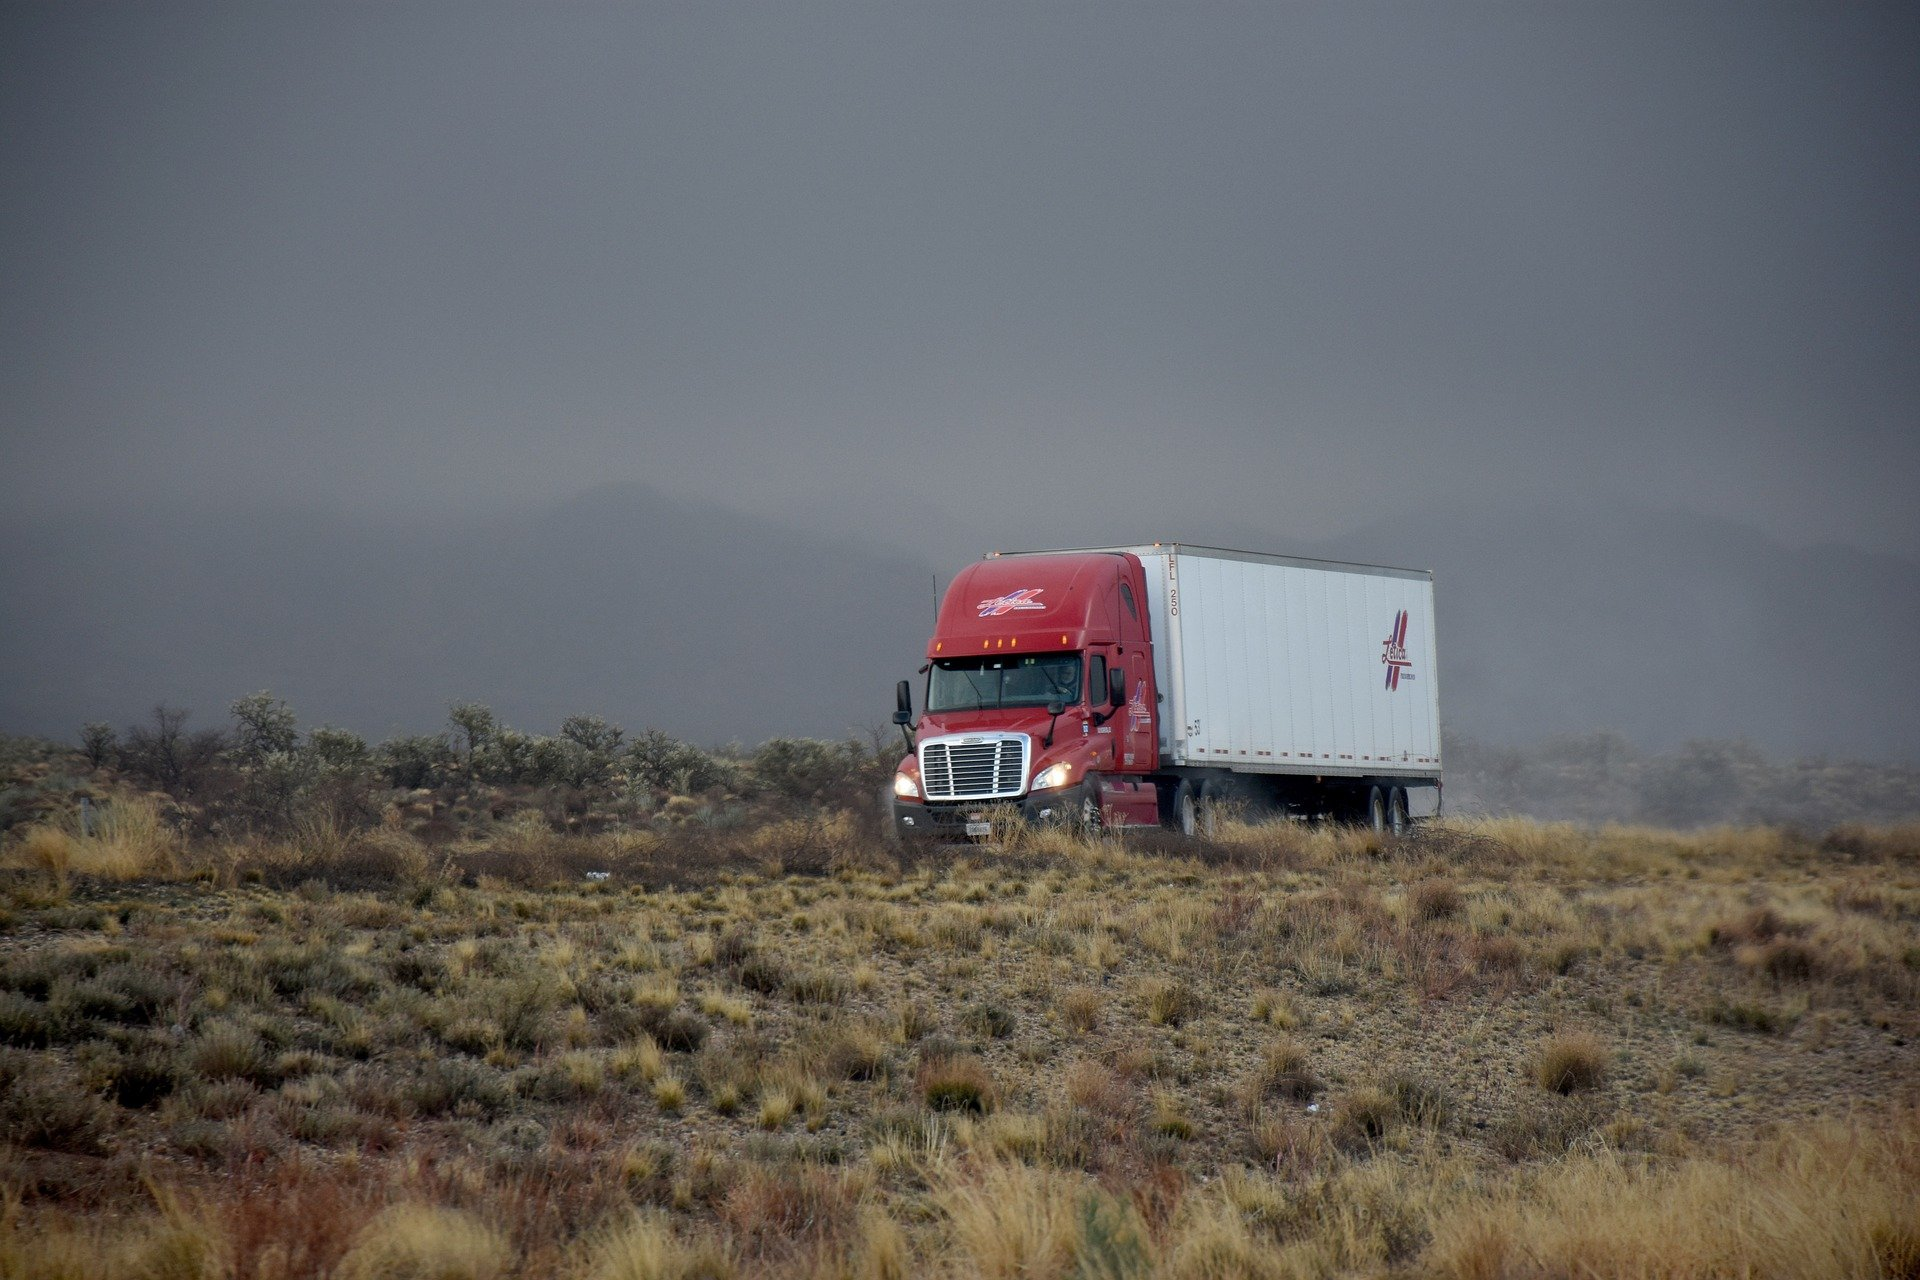 The Largest Automated Truck Market Through 2030 will be in N.A.